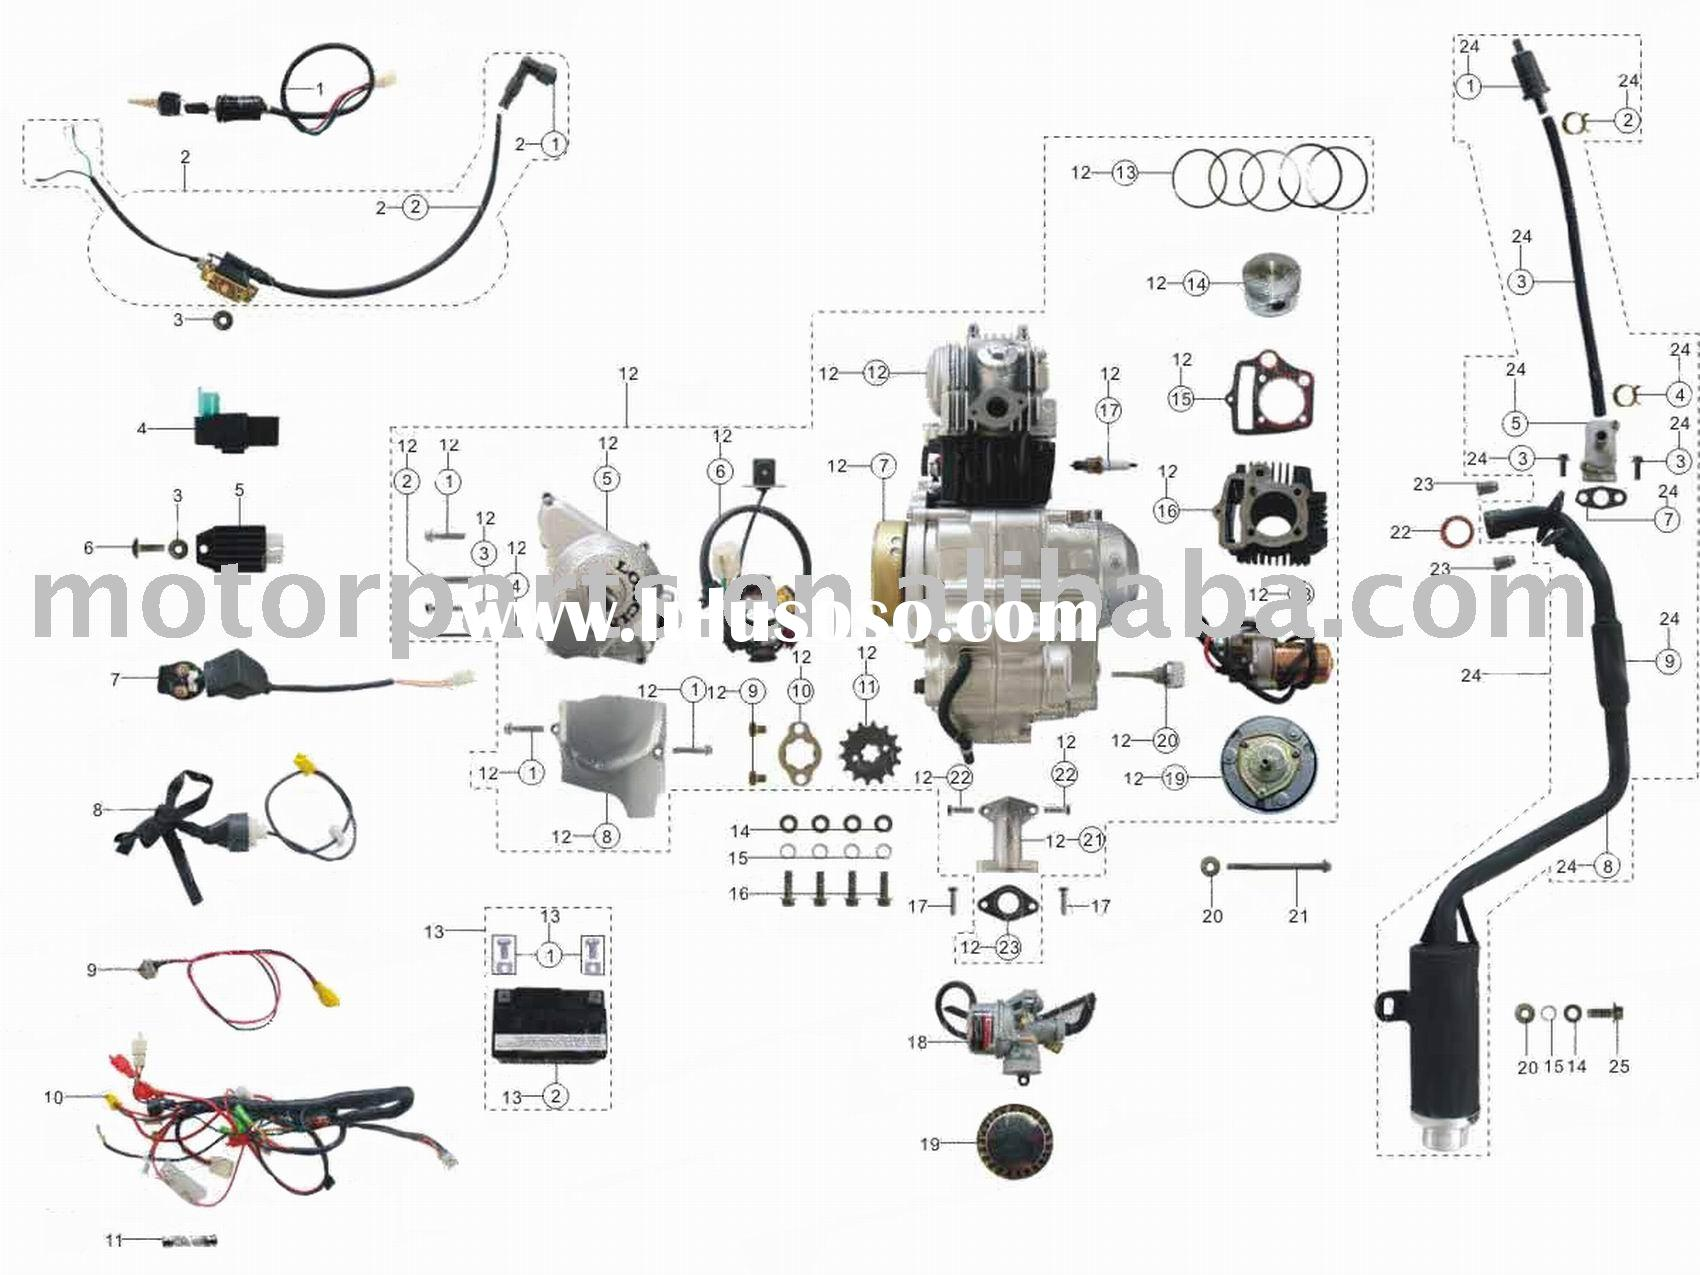 17d 200cc atv wiring diagram wiring resources roketa 90cc atv wiring diagram marshin atv 250 wiring diagram #14